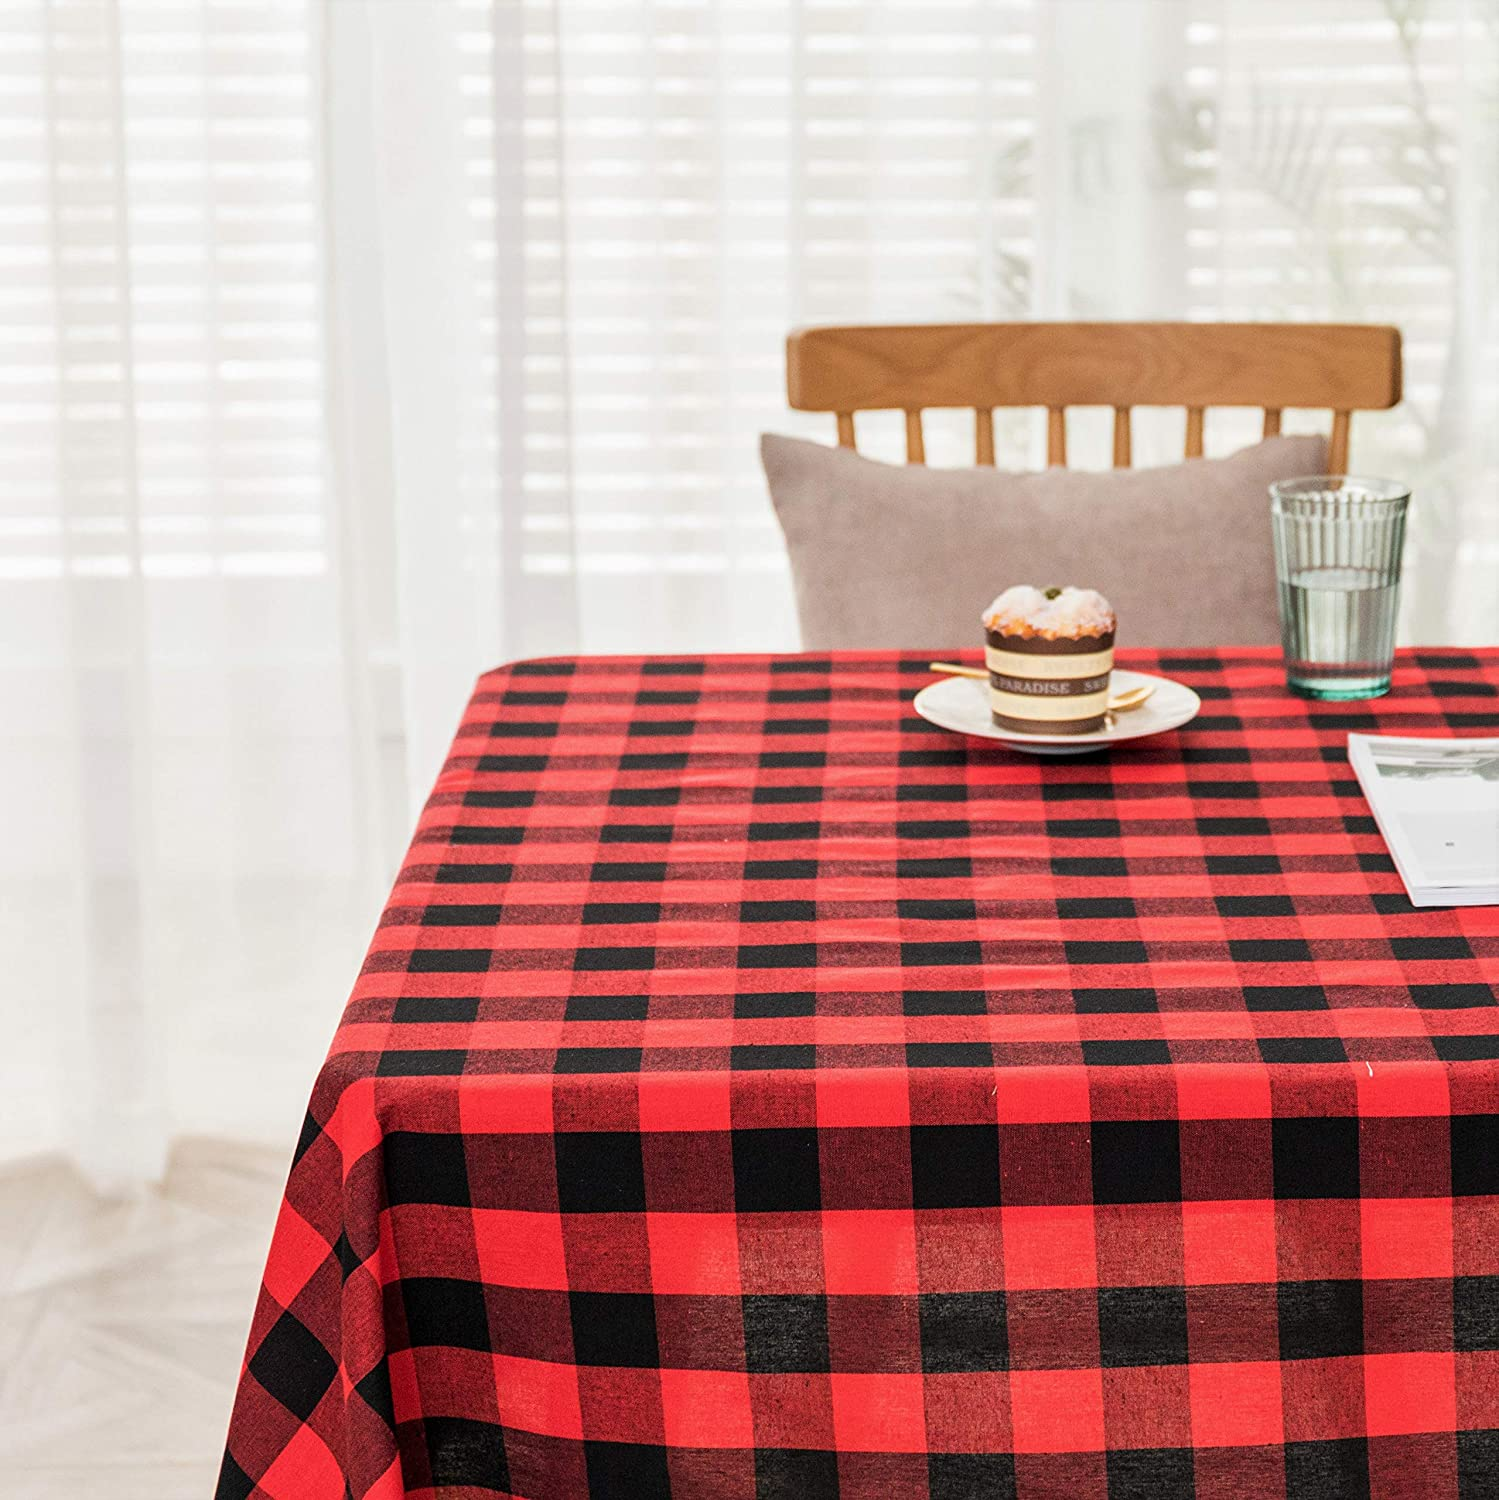 Spring Garden Home Tablecloth 52x70 for Rectangle/Oval Table Buffalo Checkered 6ft Long Tabletop Decoration for Summer Party/Events Decoration, Red and Black